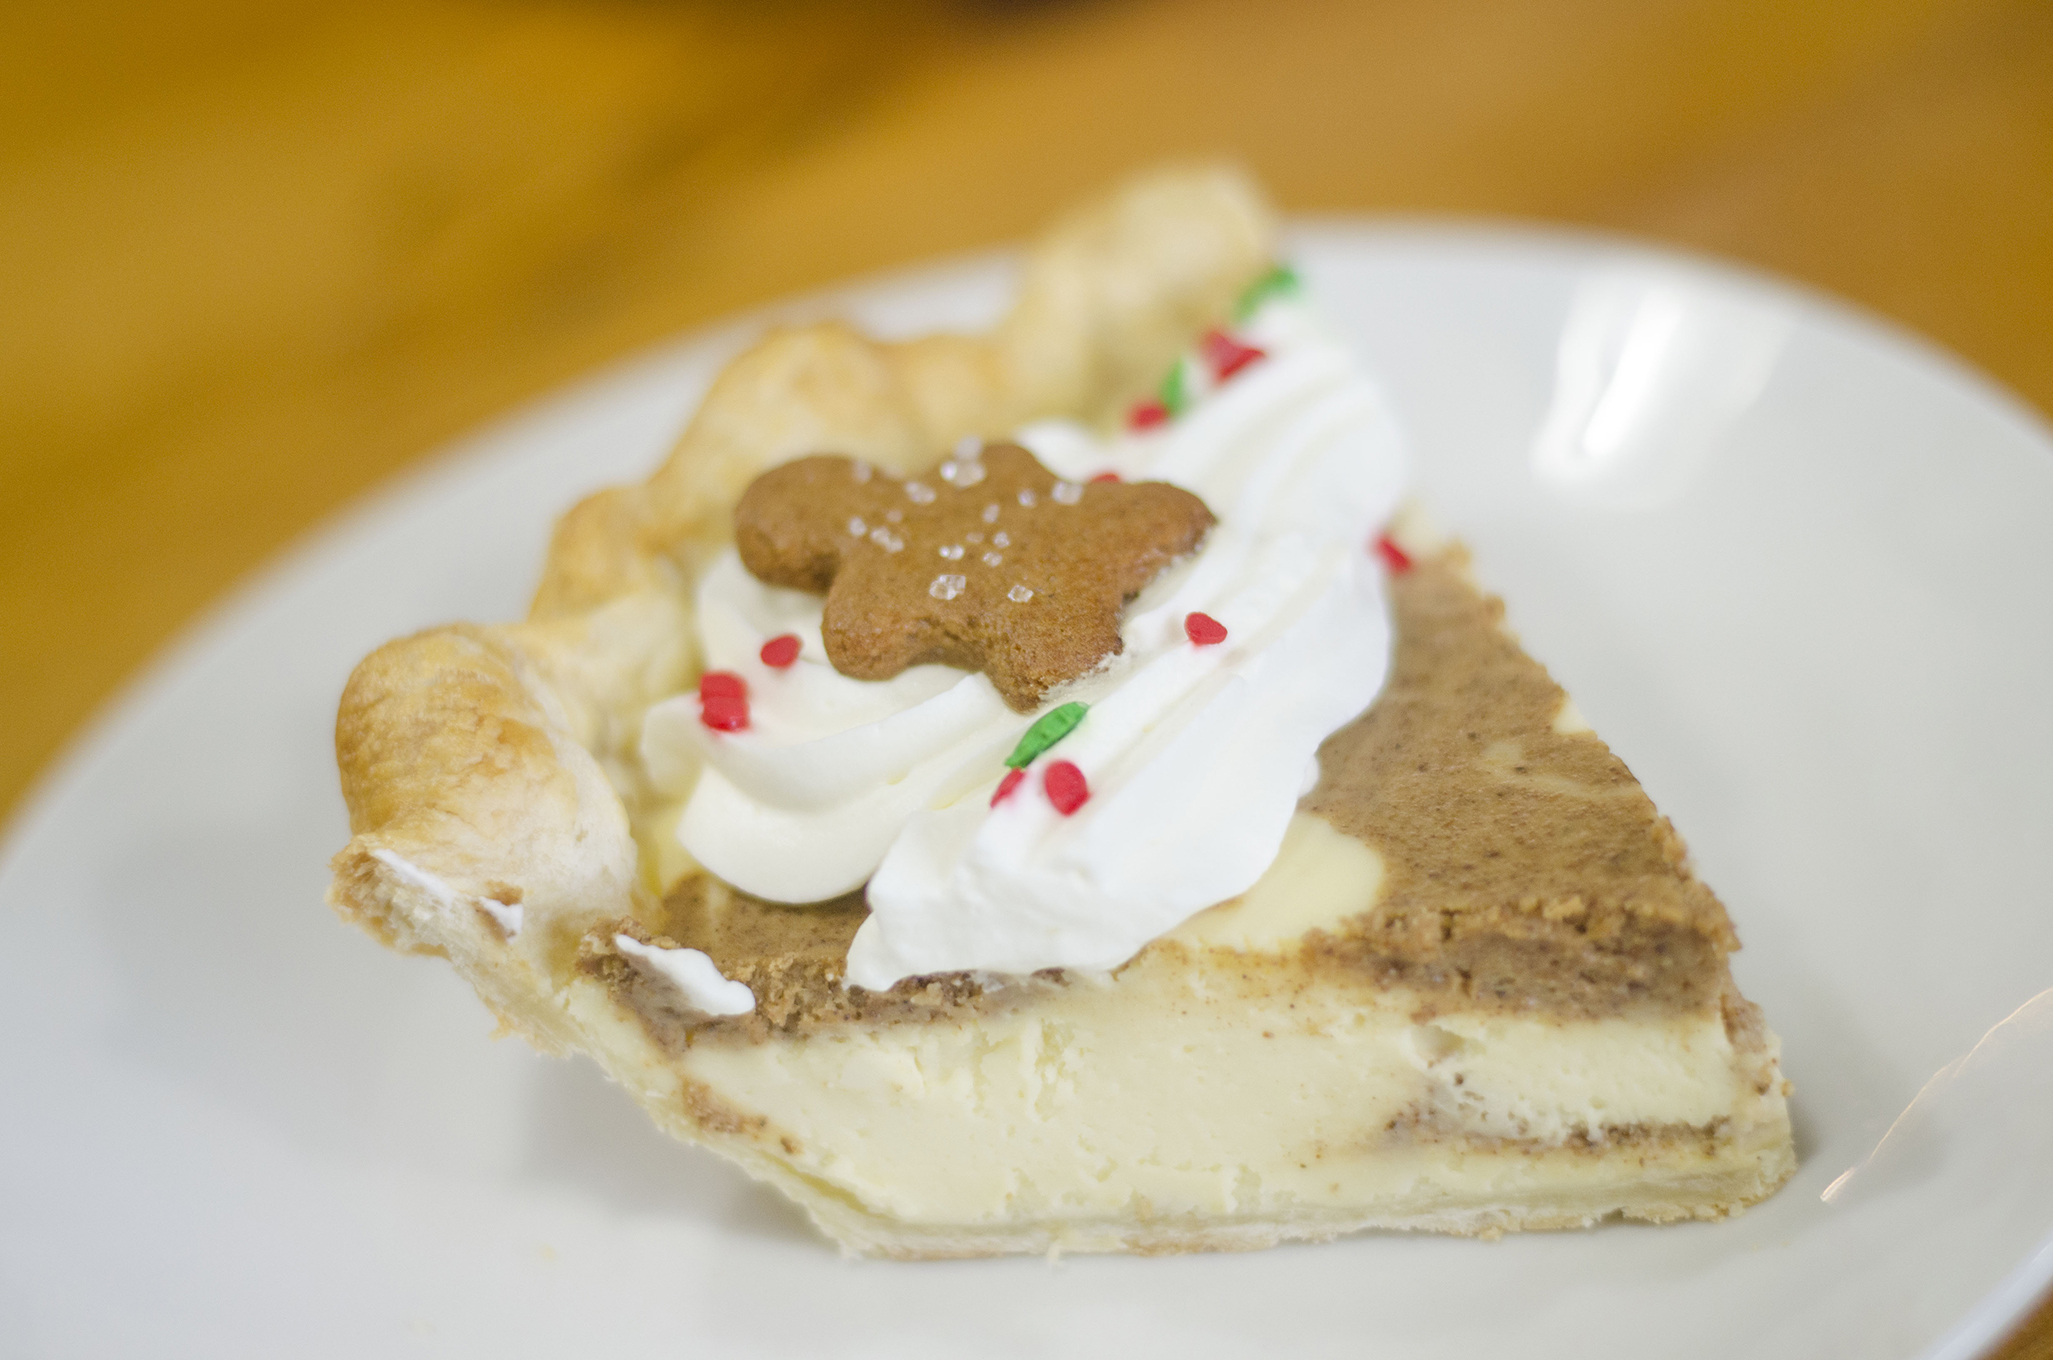 Gingerbread Cheesecake pie from Riverside Pie Cafe in Windsor, Ontario.